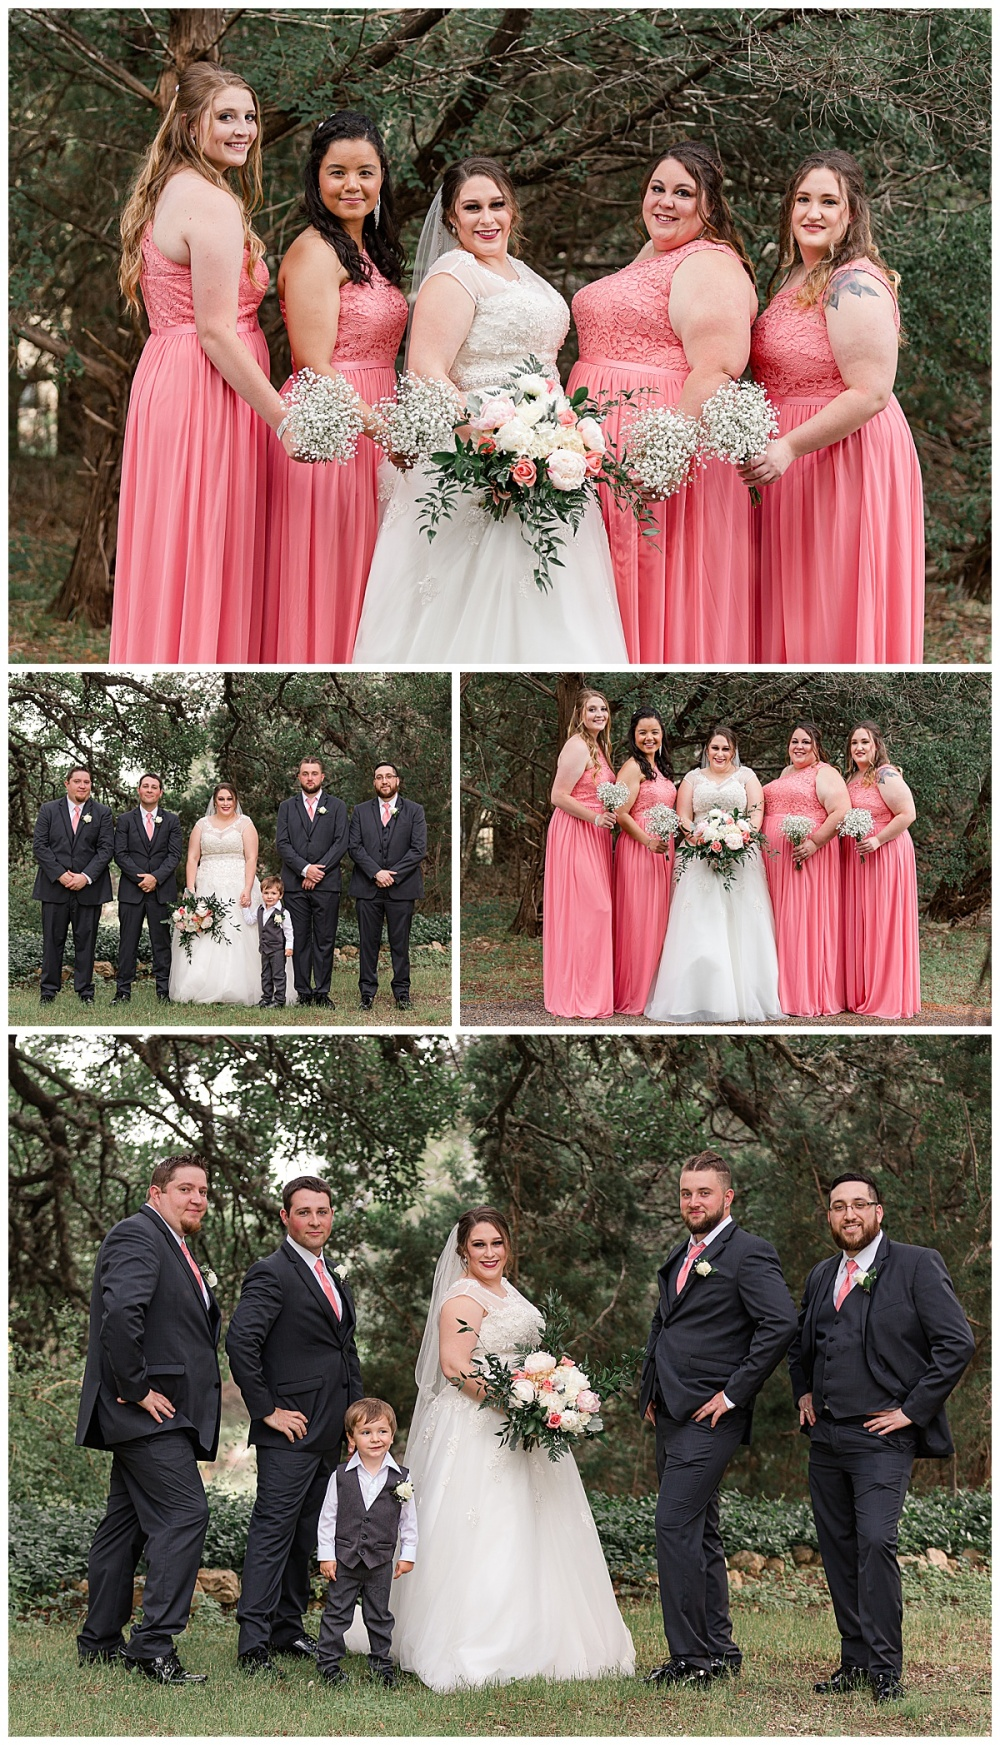 Michael-Tiffany-Wedding-New-Braunfels-Texas-Canyon-Lake-Cabins-and-Cottages-Carly-Barton-Photography_0028.jpg